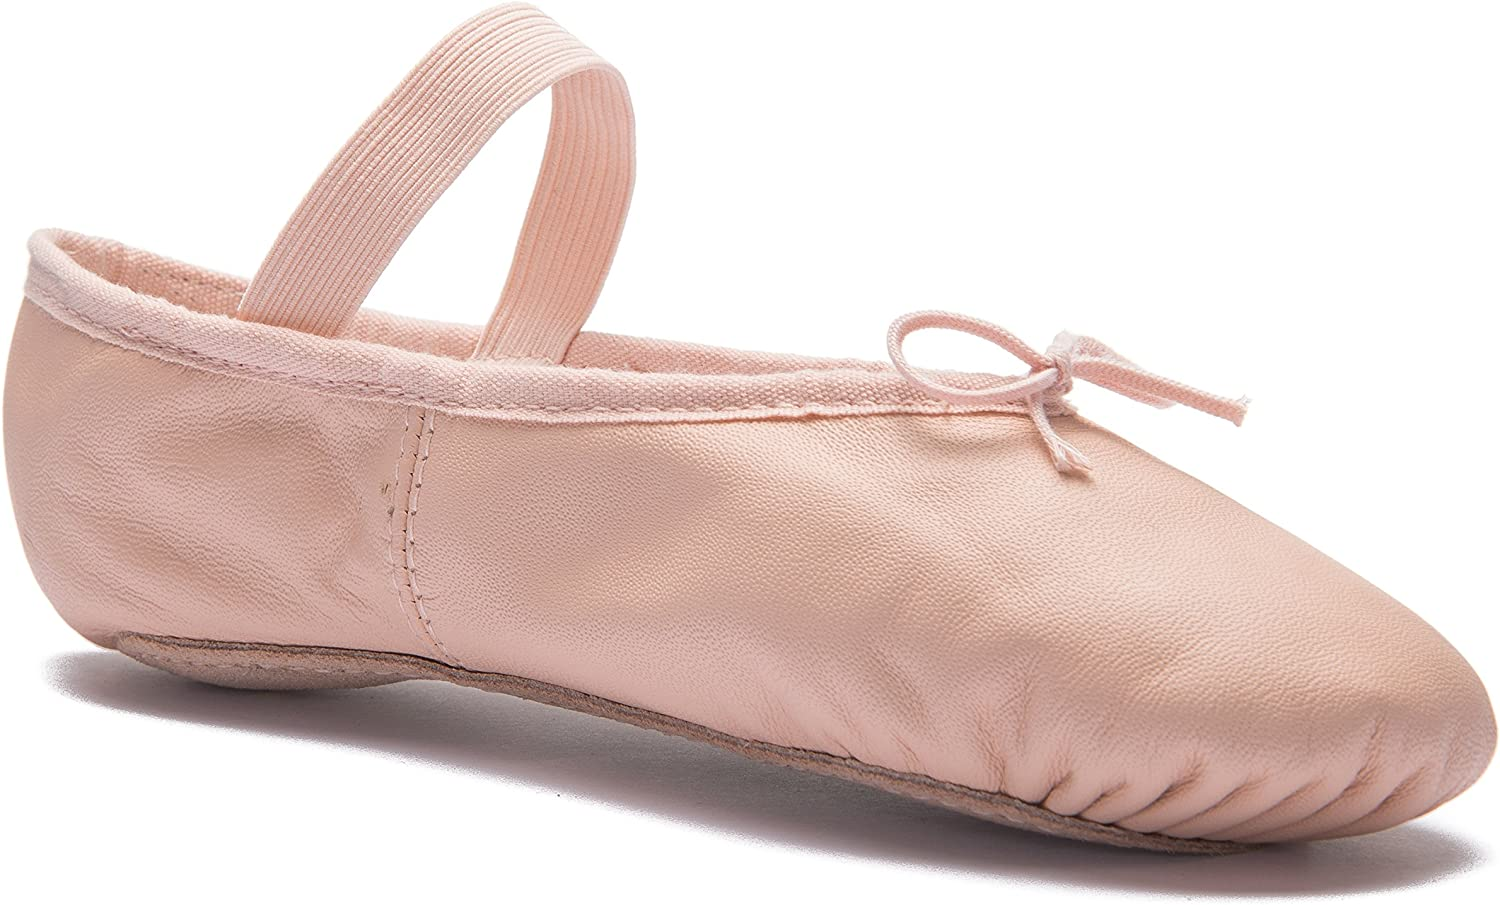 Bloch SO209 Arise Pink Leather Ballet Shoe Size 1 Child to 8 Adult s0209 209